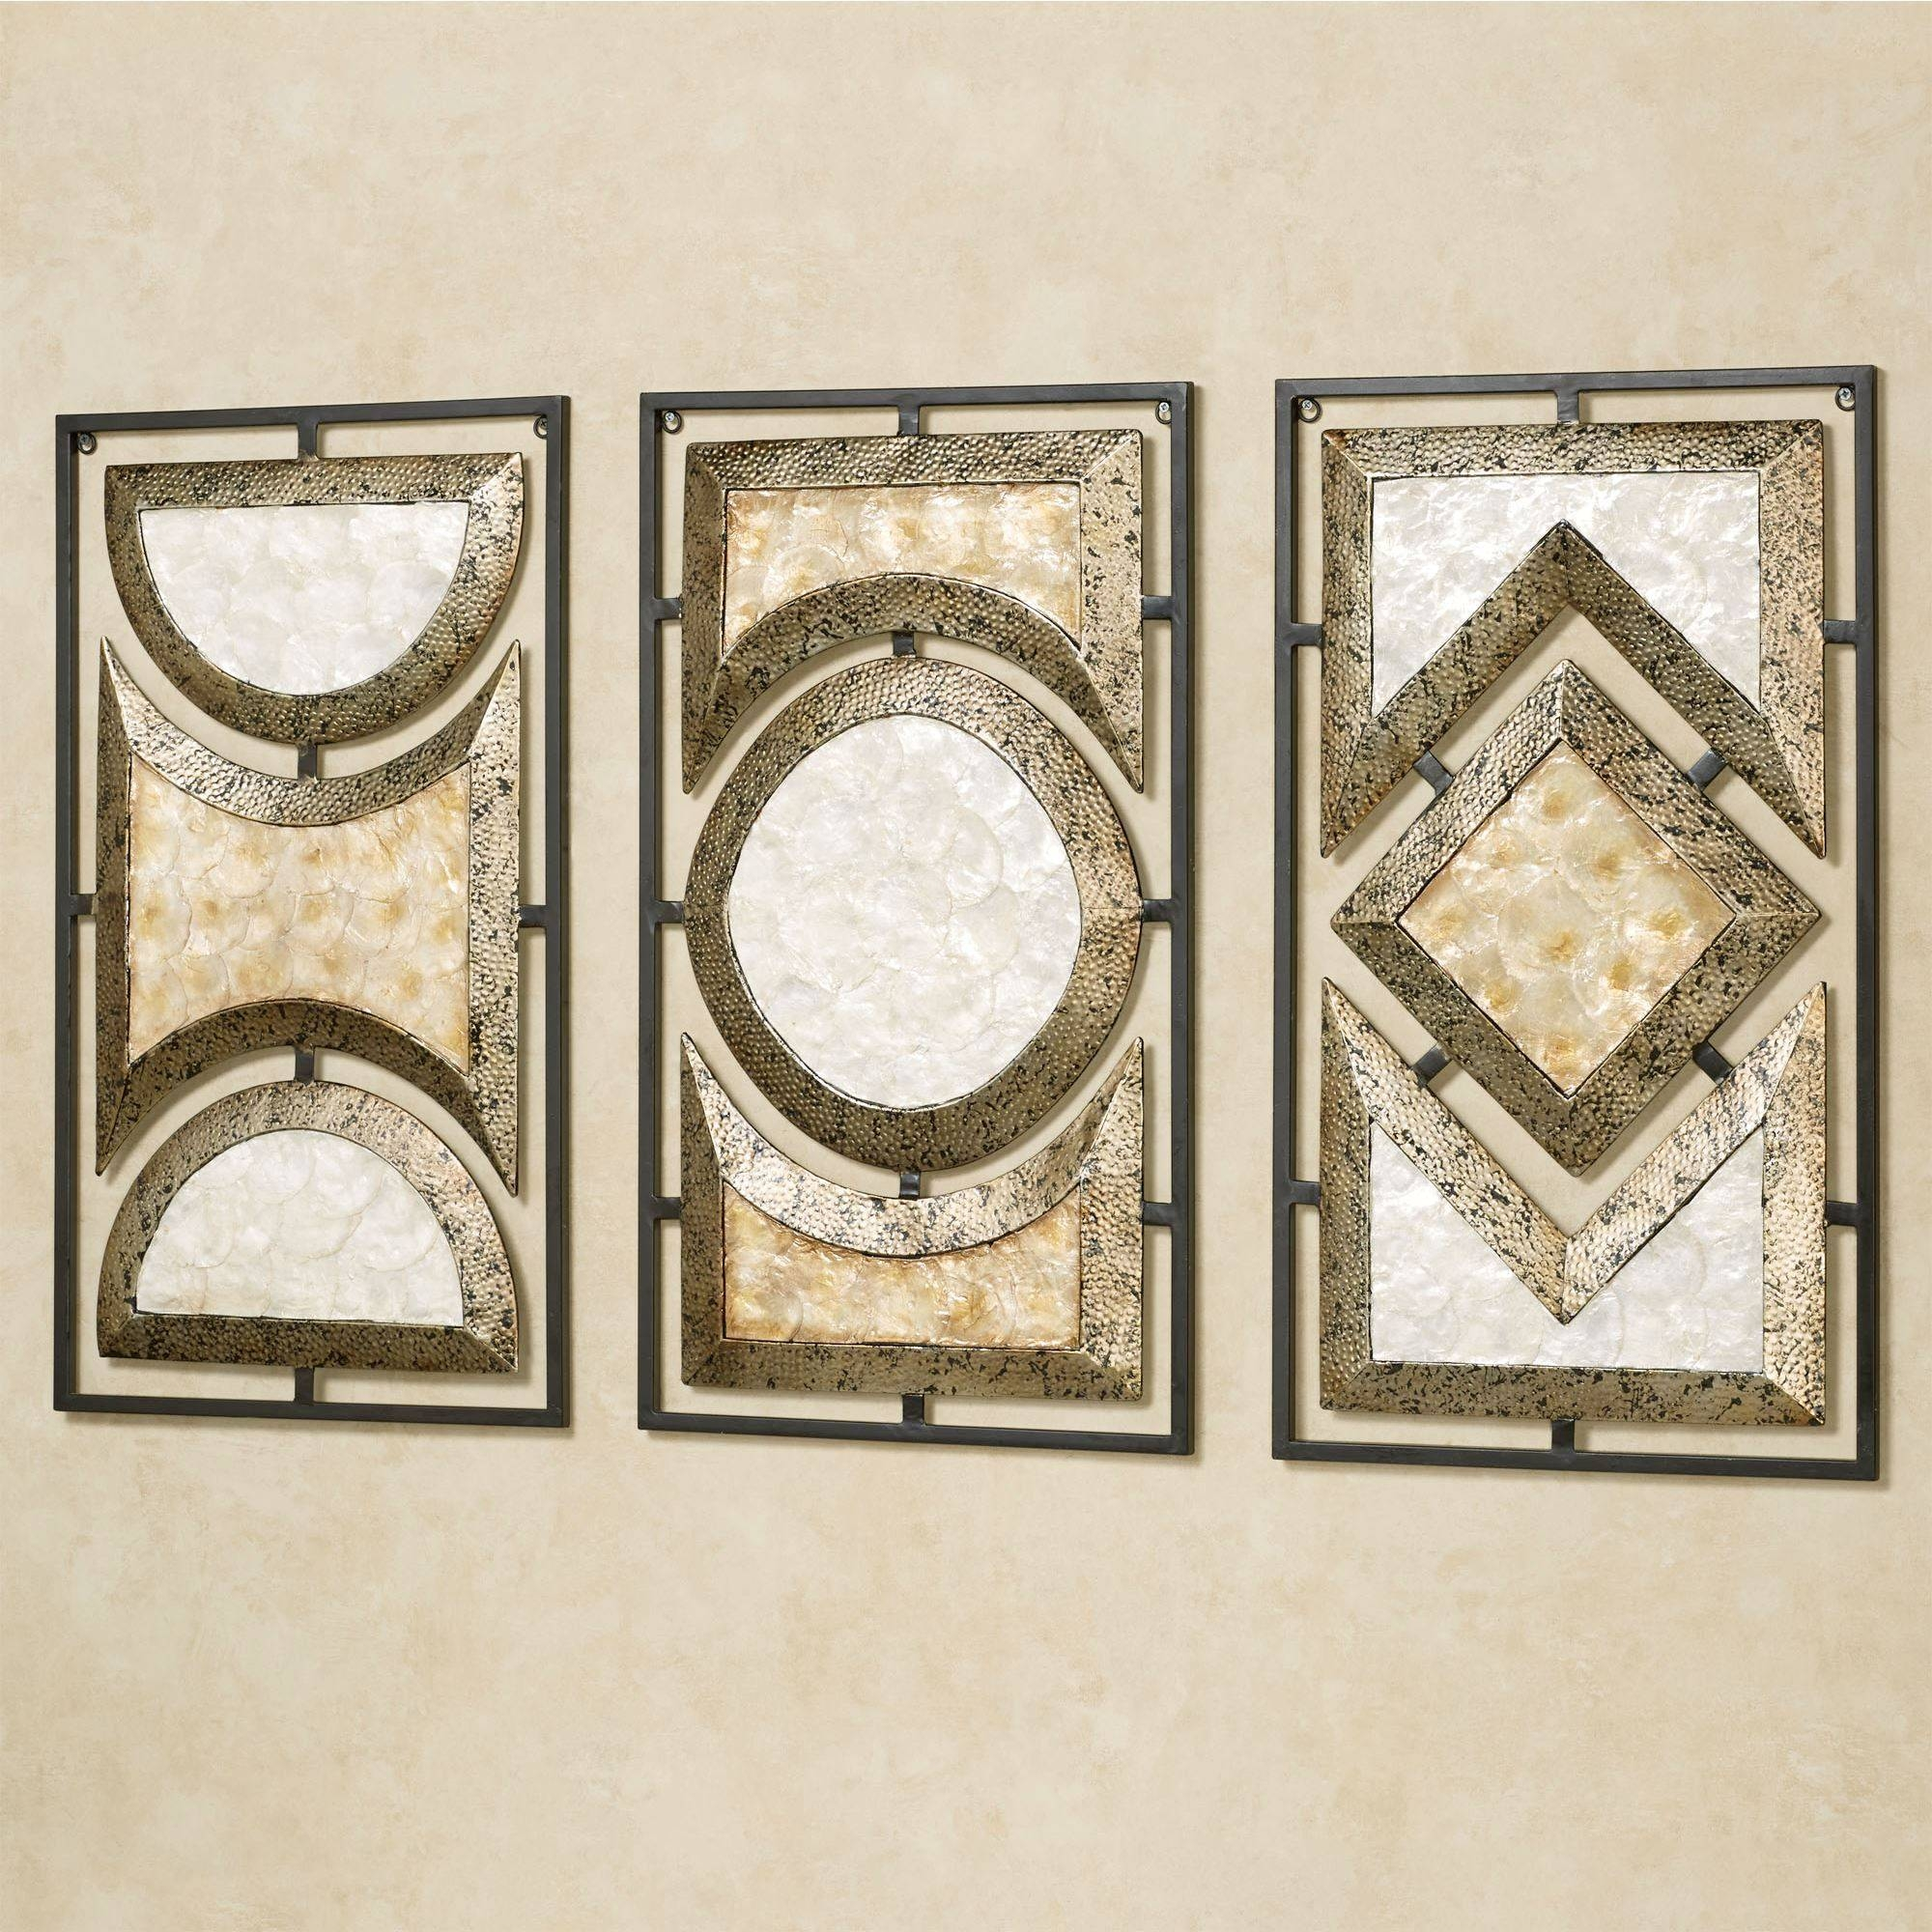 Pasquale Capiz Shell Metal Wall Art Set throughout Most Popular Metal Wall Art Sets